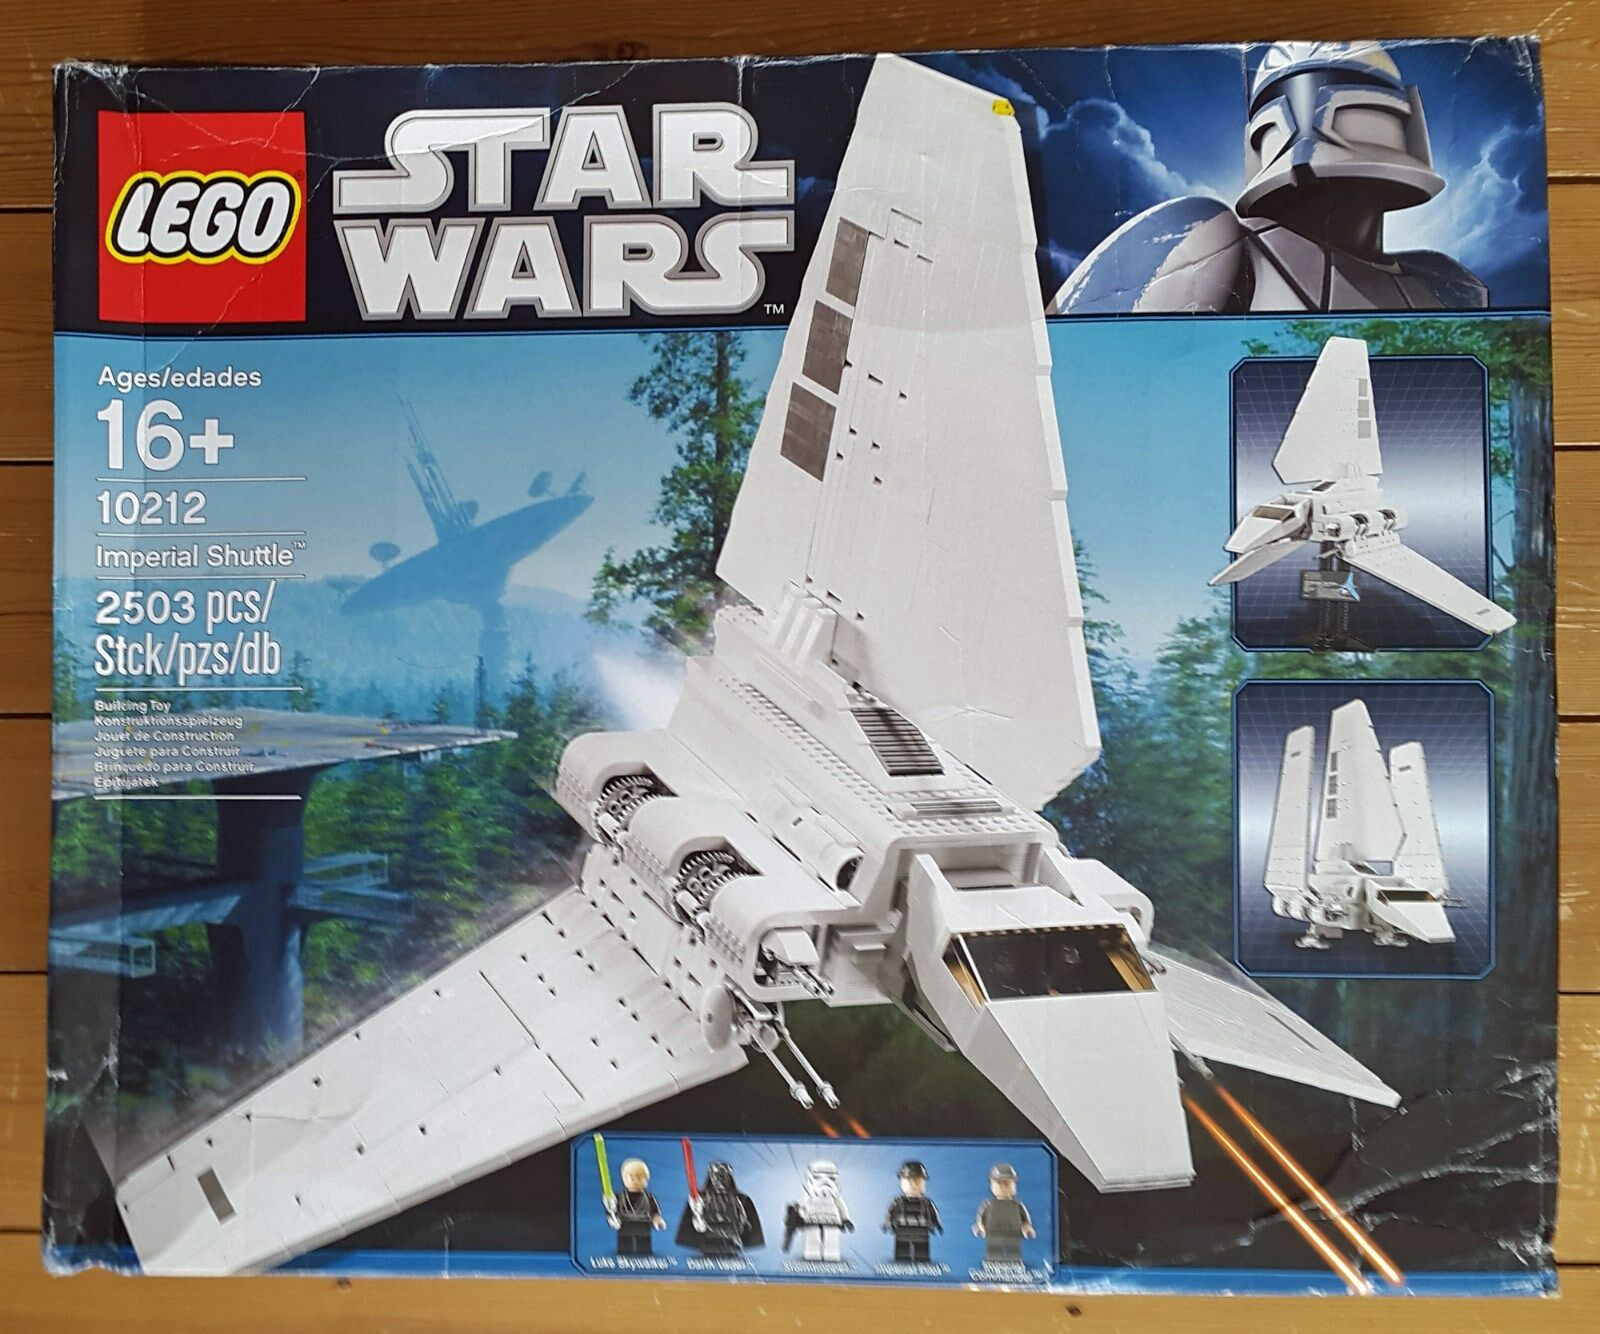 LEGO Star Wars 10212 Imperial Shuttle UCS (Now RetiROT) - New, Sealed in Box